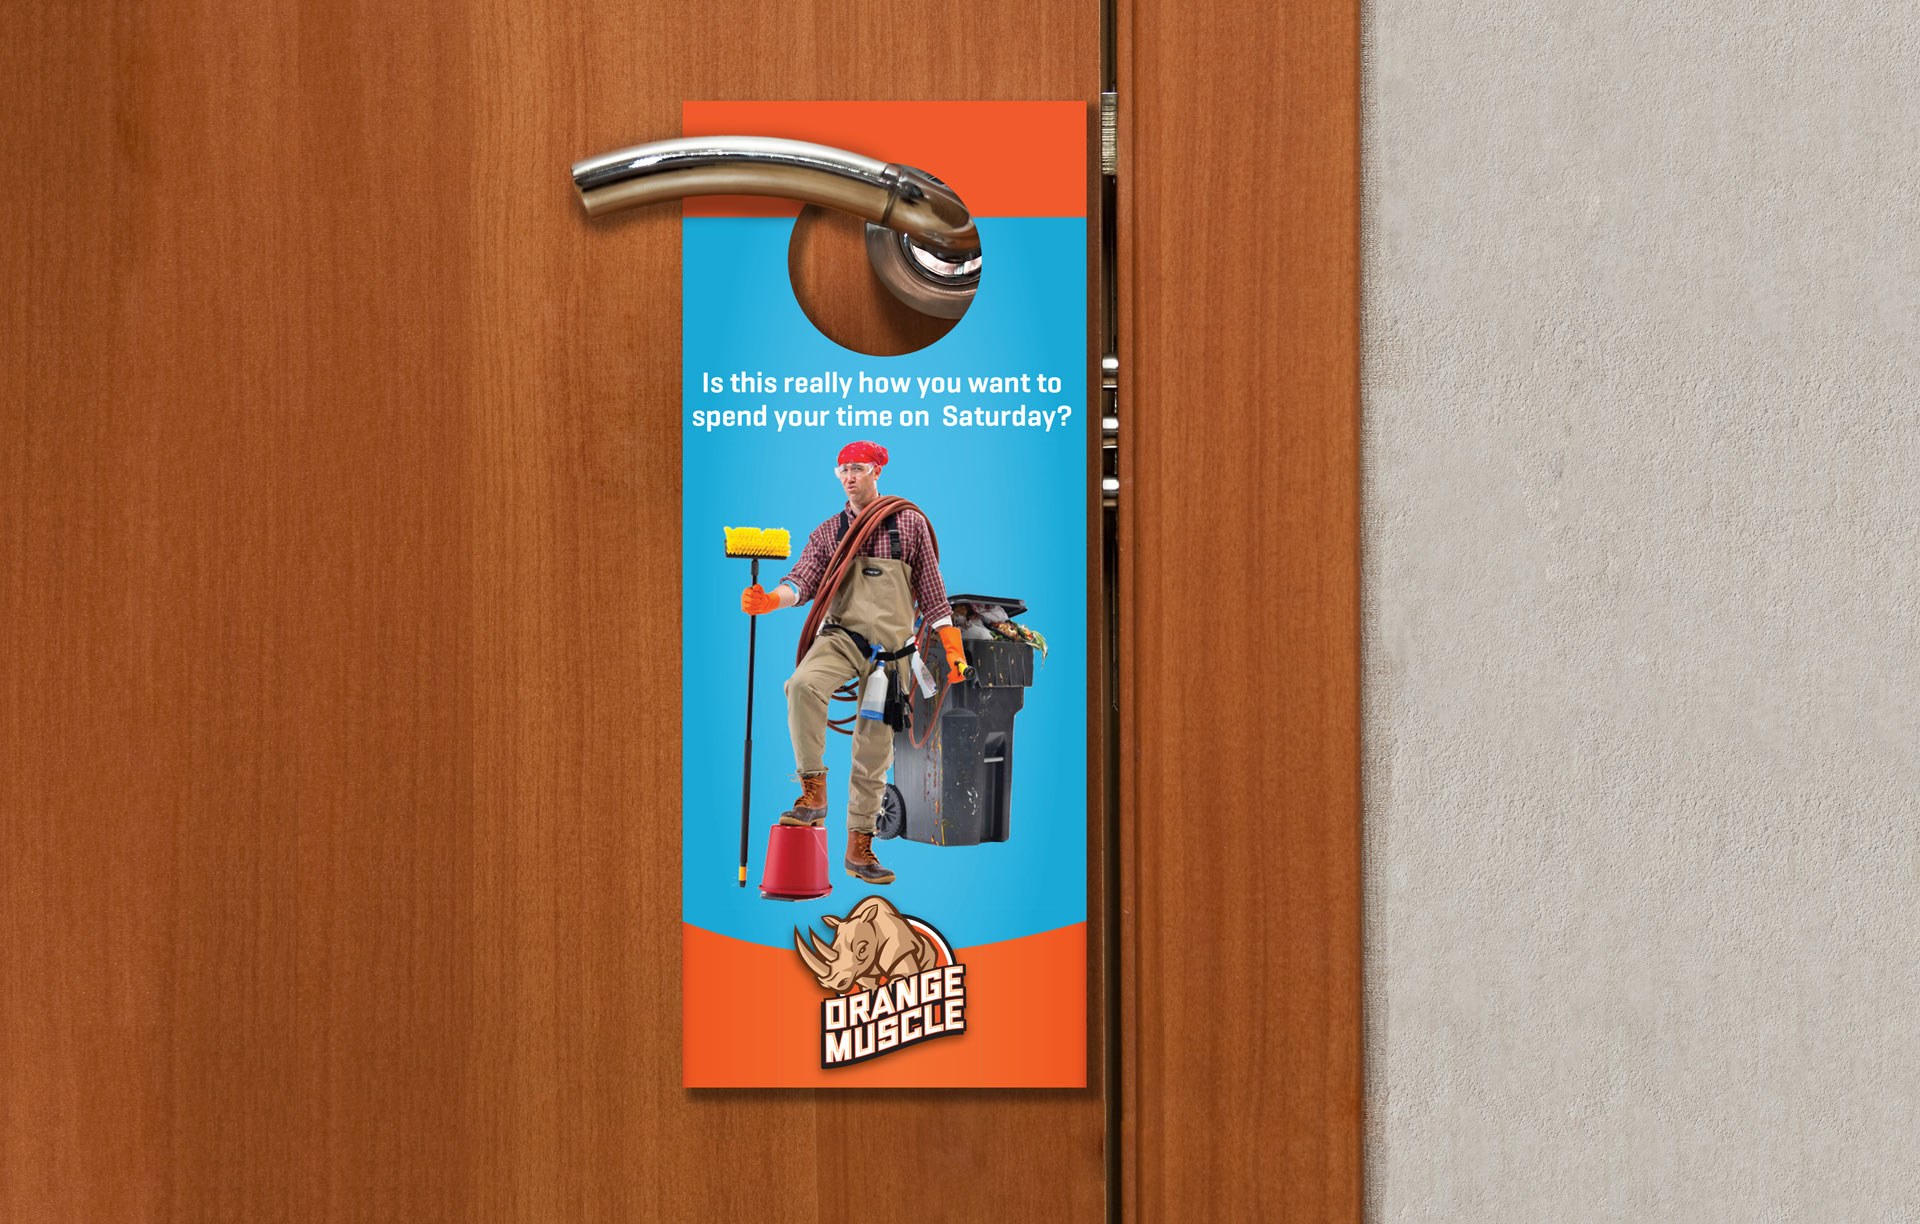 Orange Muscle Door Hanger